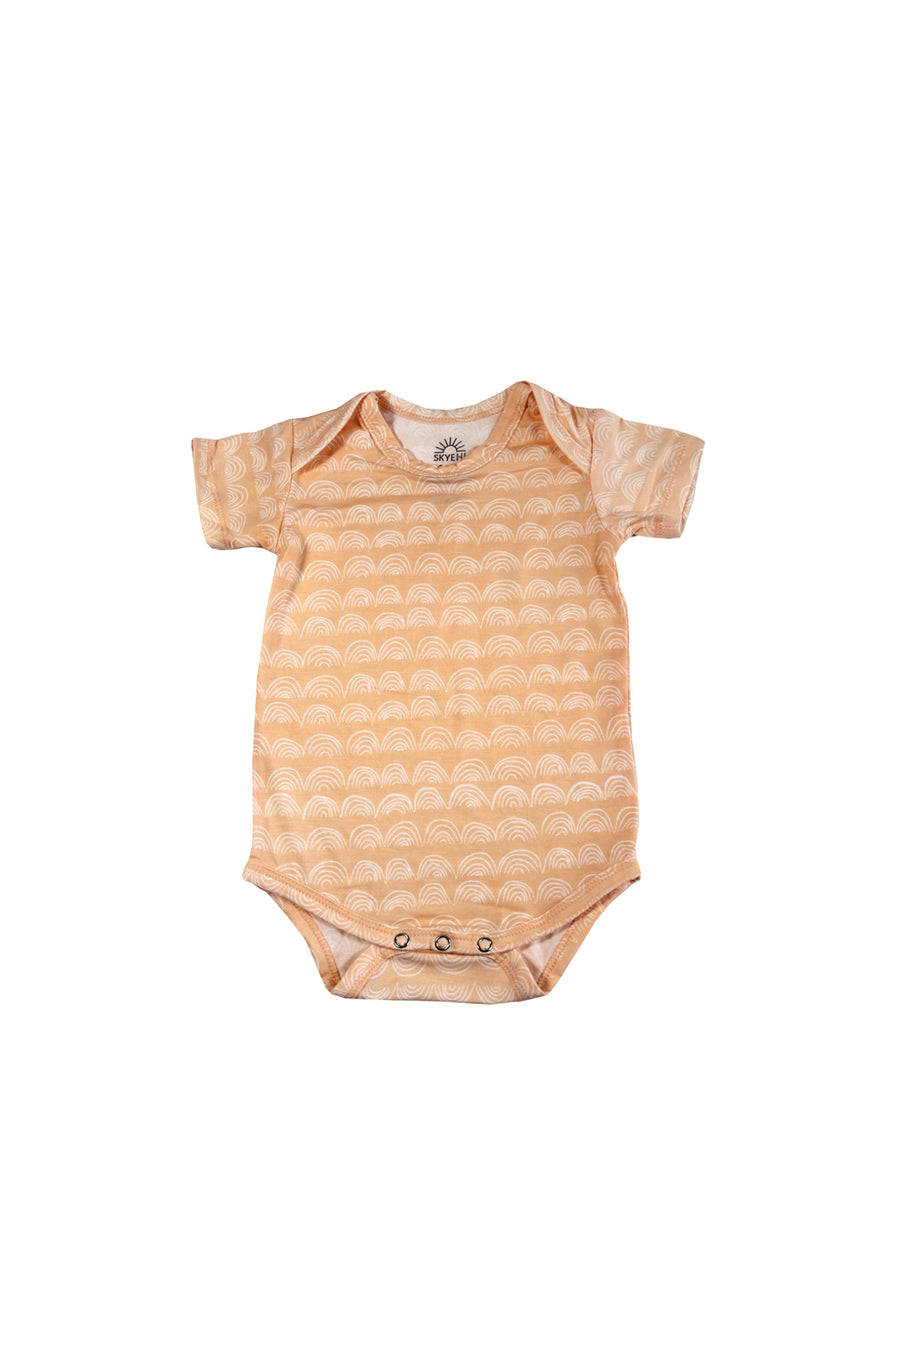 Short Sleeve Onesie - Beach Sand Rainbow